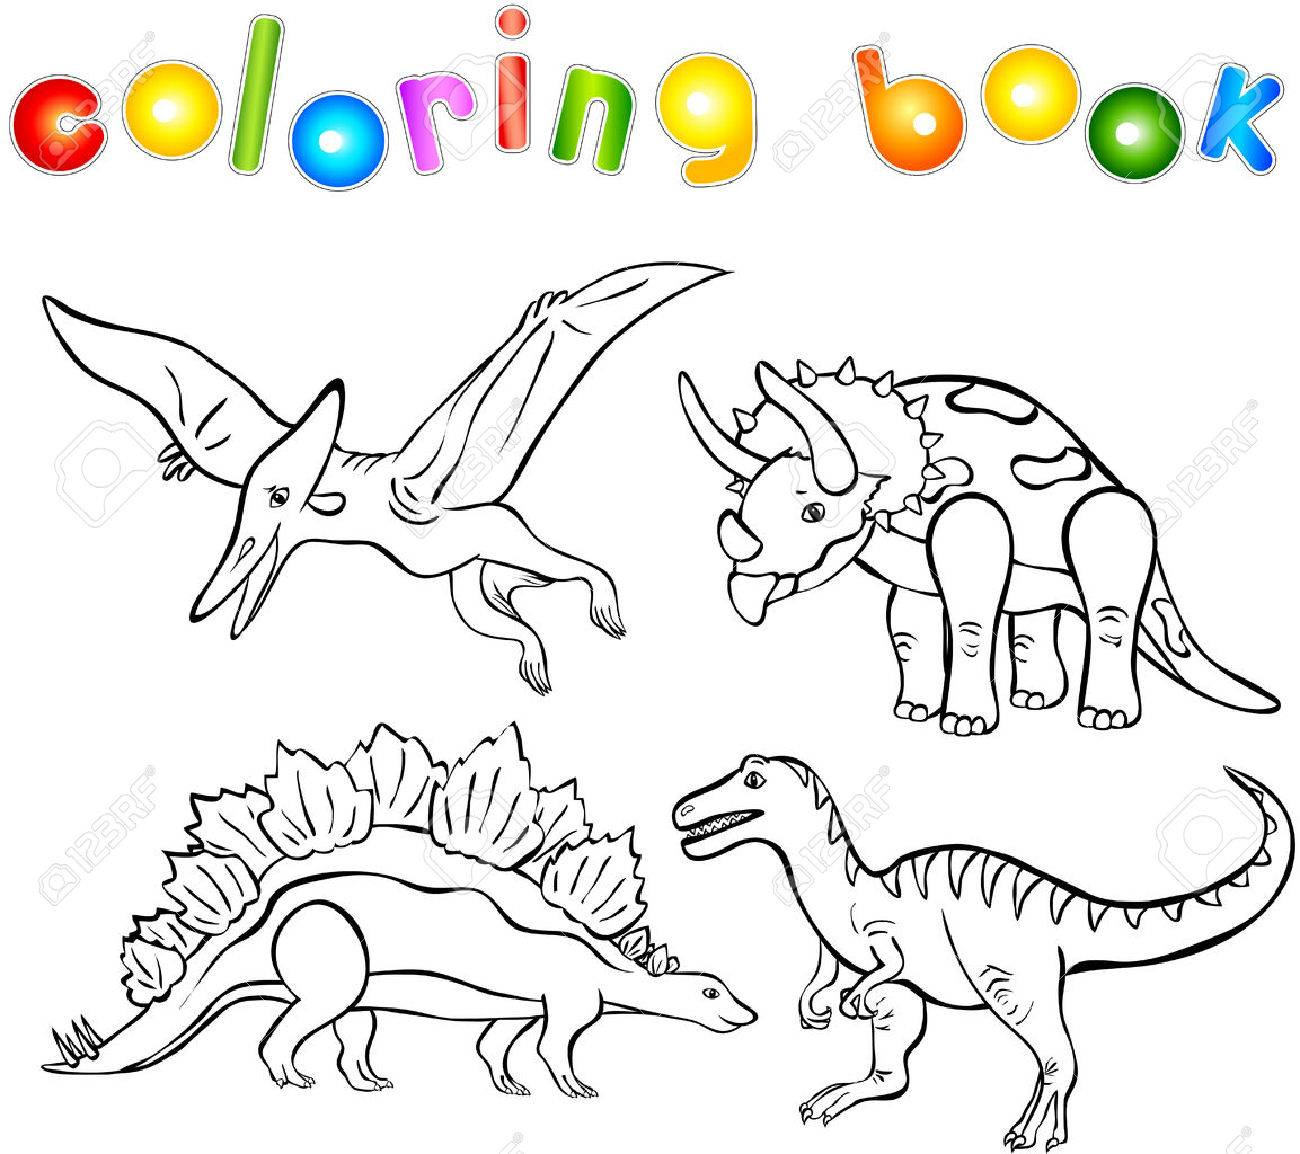 Funny Cartoon Dinosaurs Second Set Coloring Book Stock Vector